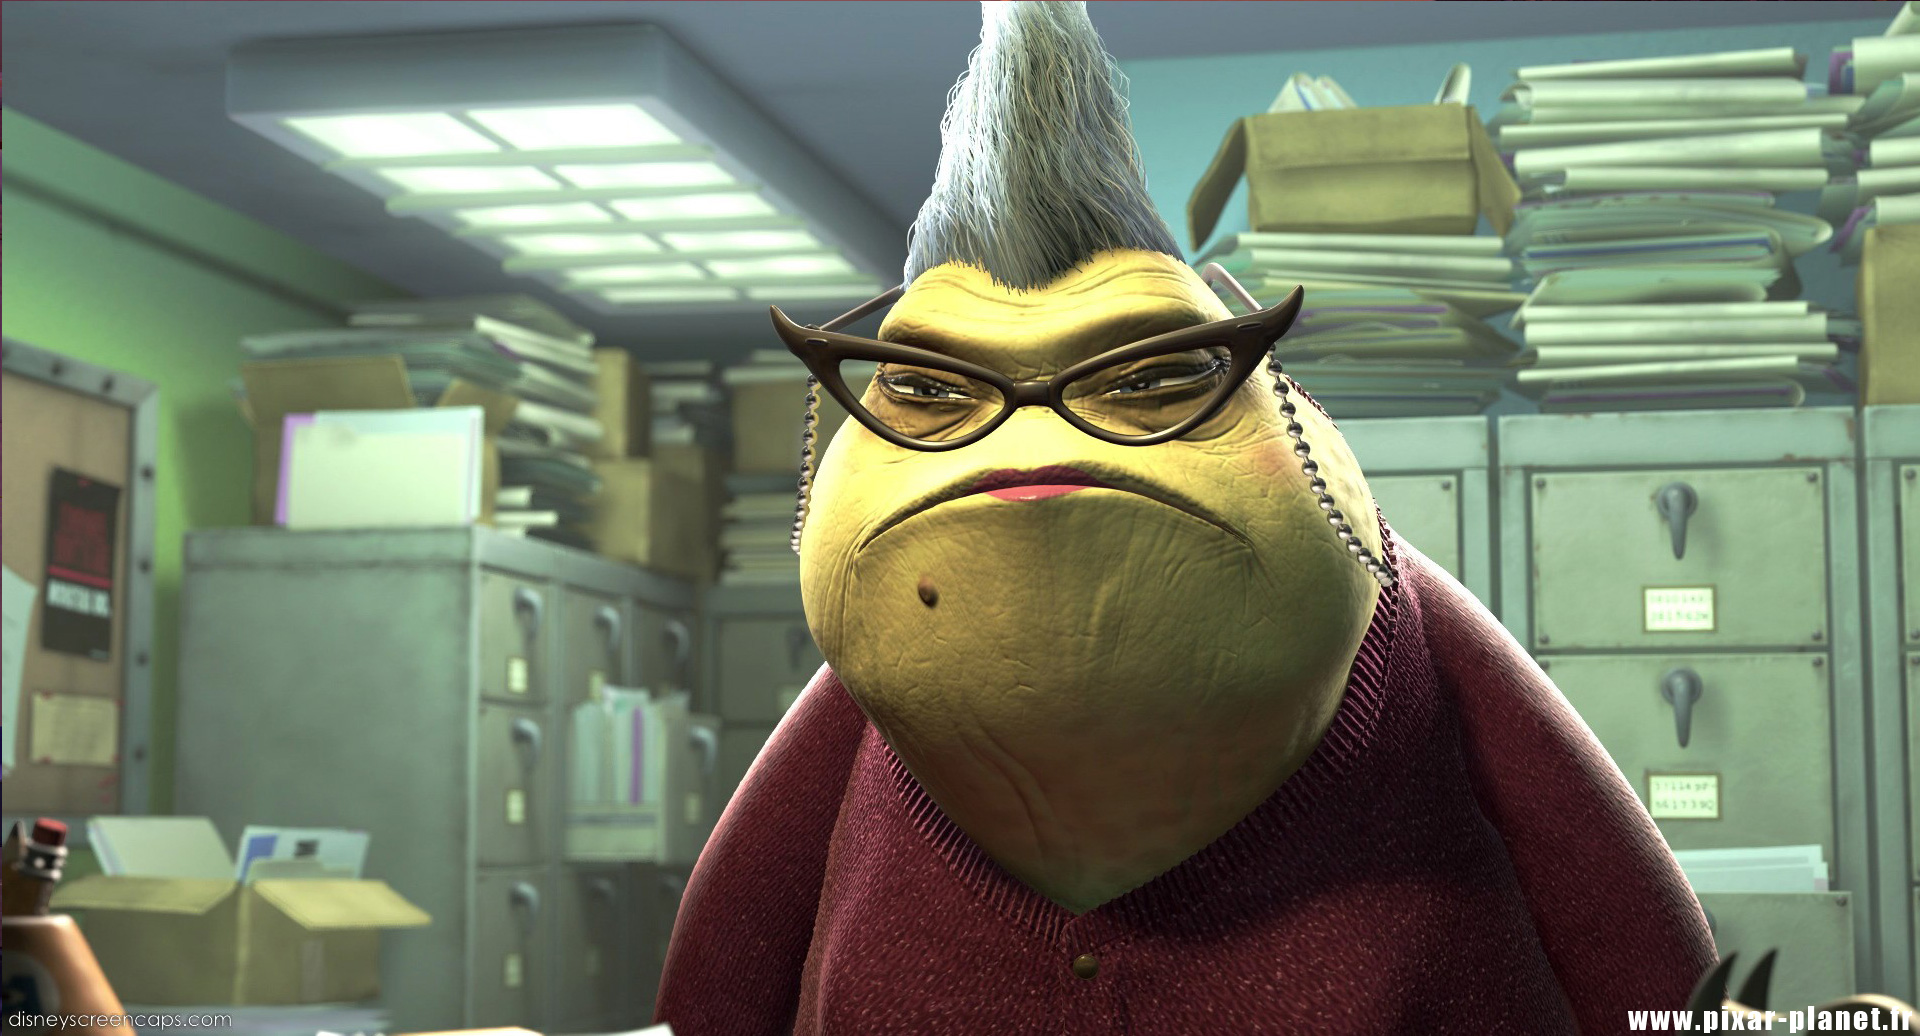 Roz. I'm not kidding, this is what she looked like.